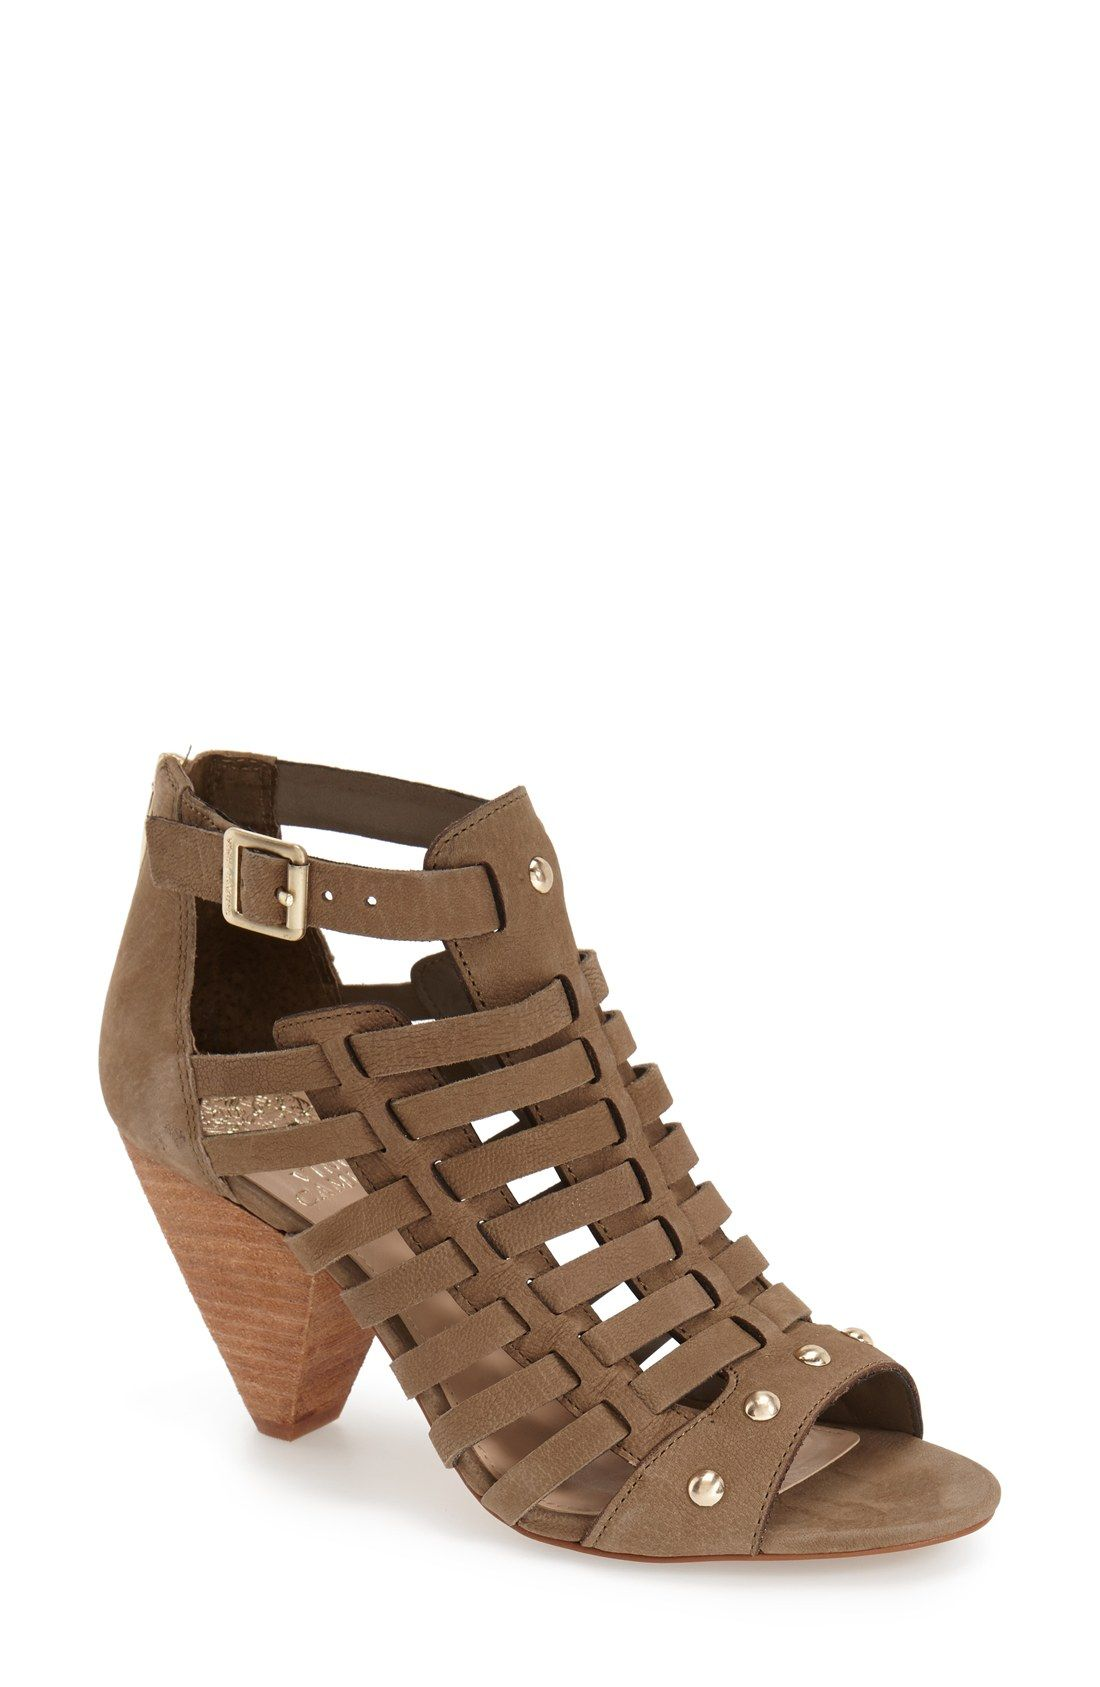 ff75285f51a15b Head over heels for this summer-staple. A gladiator-inspired look and  flirty open toe make these too cute to pass up.